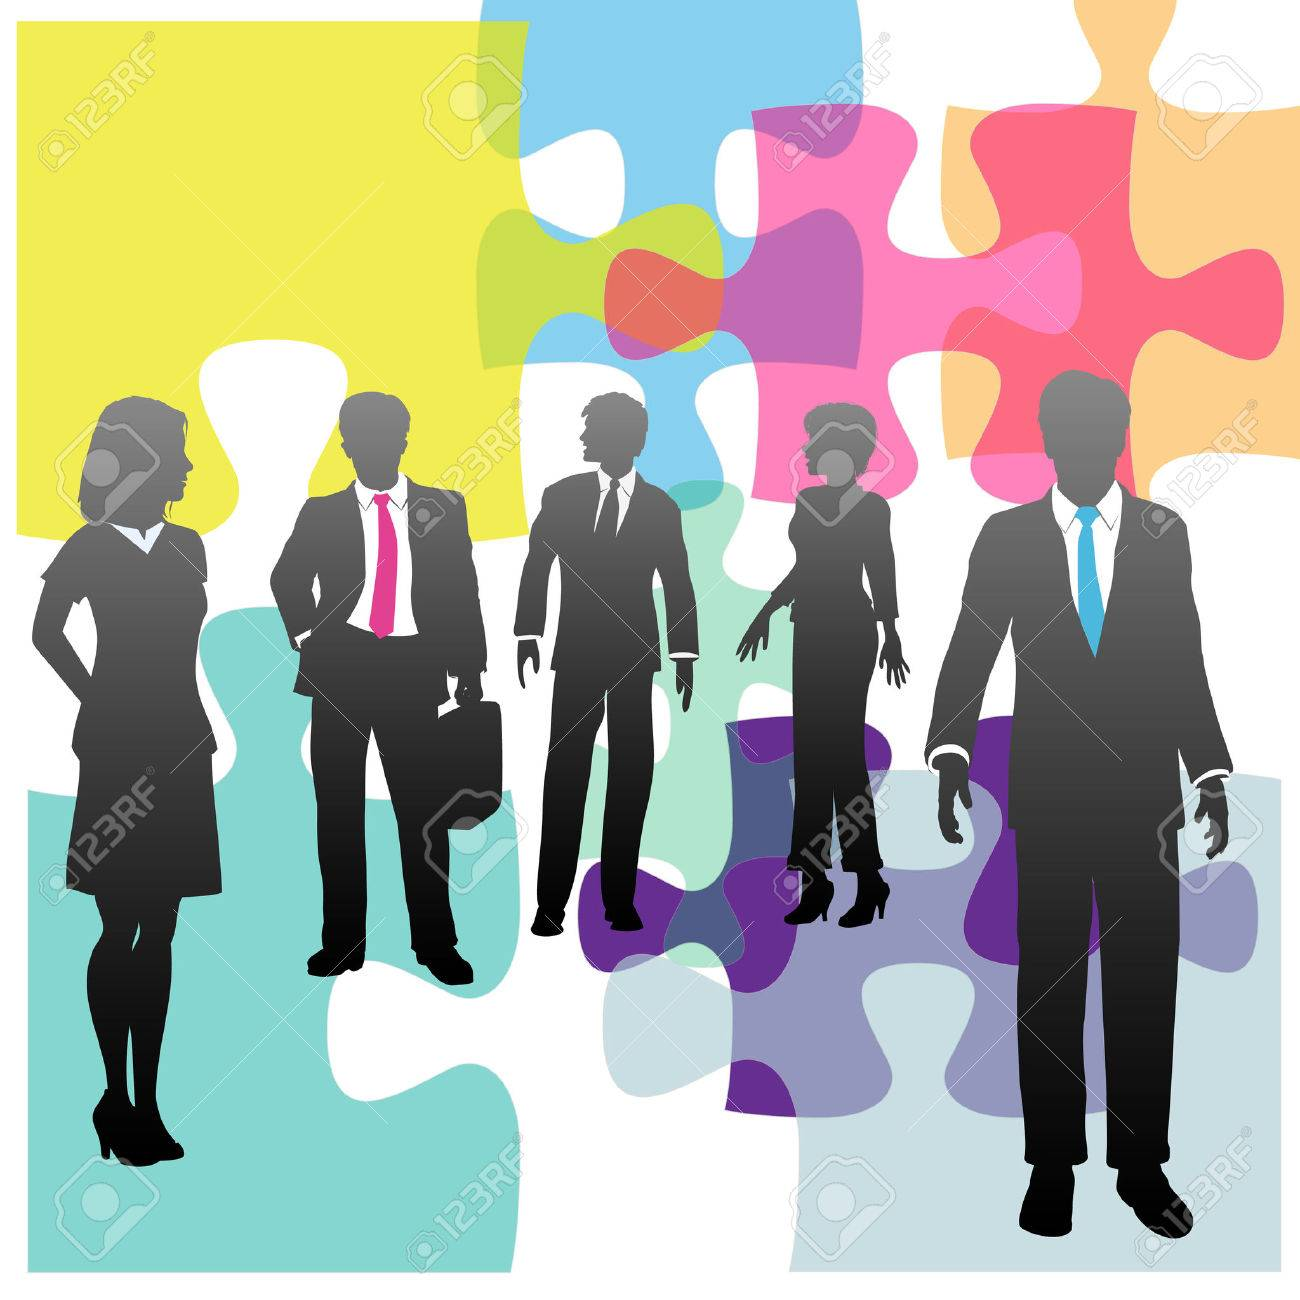 Jigsaw puzzle and business people as complex human resources problem or solution Stock Vector - 8002521